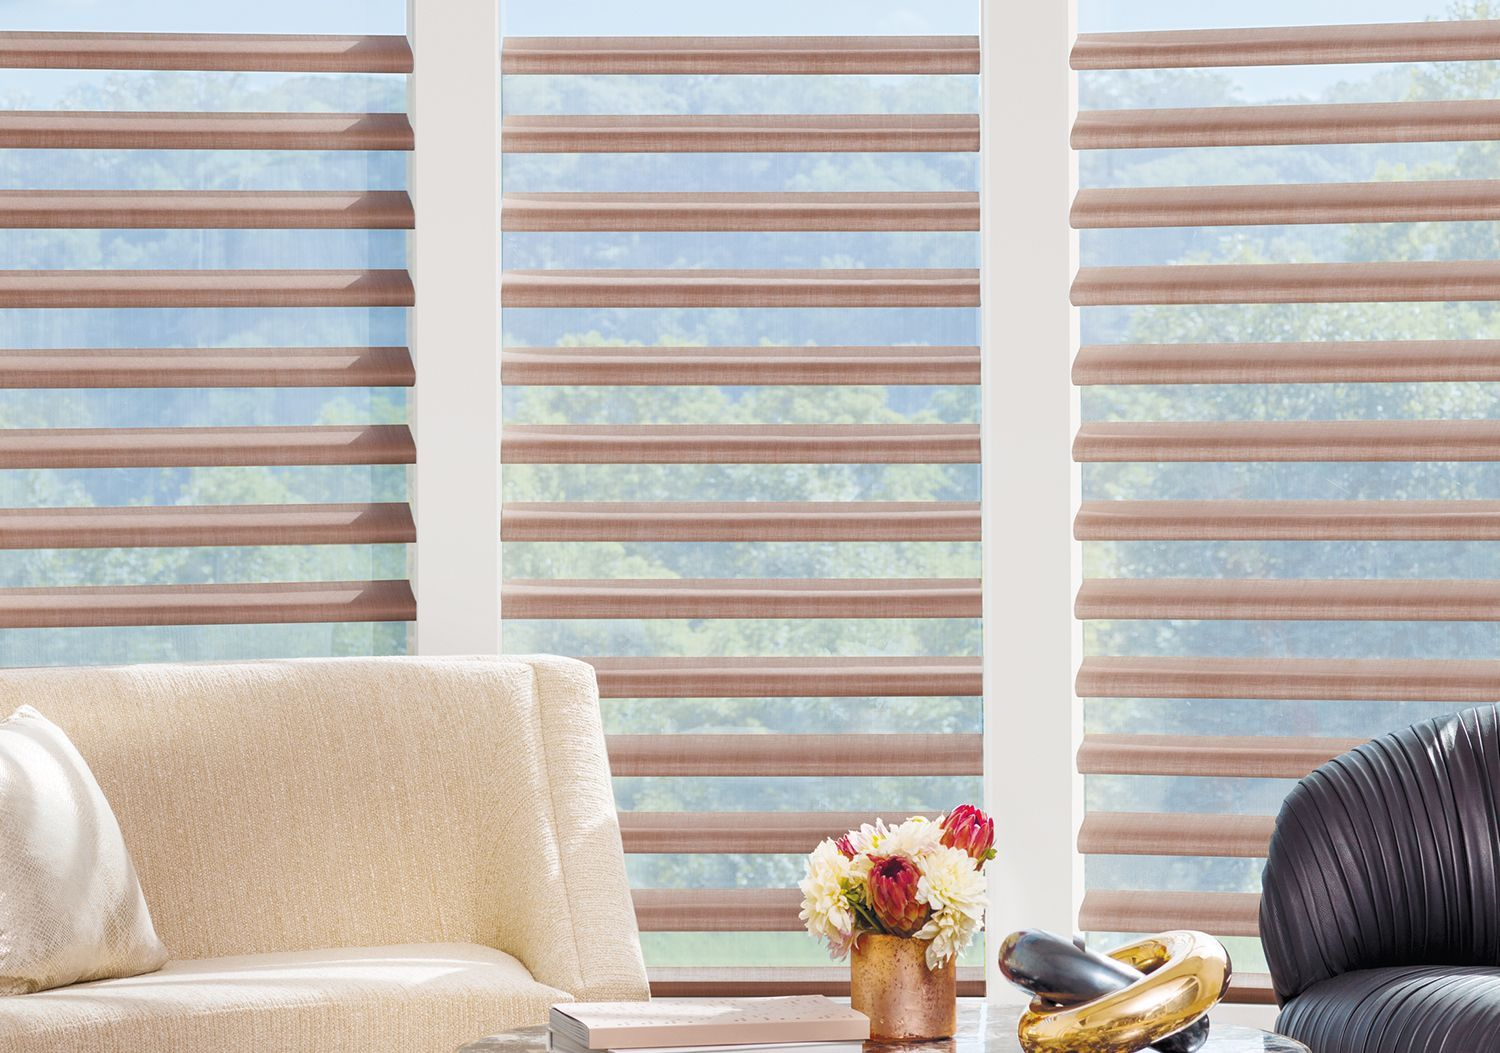 Pirouette Window Shadings in living room